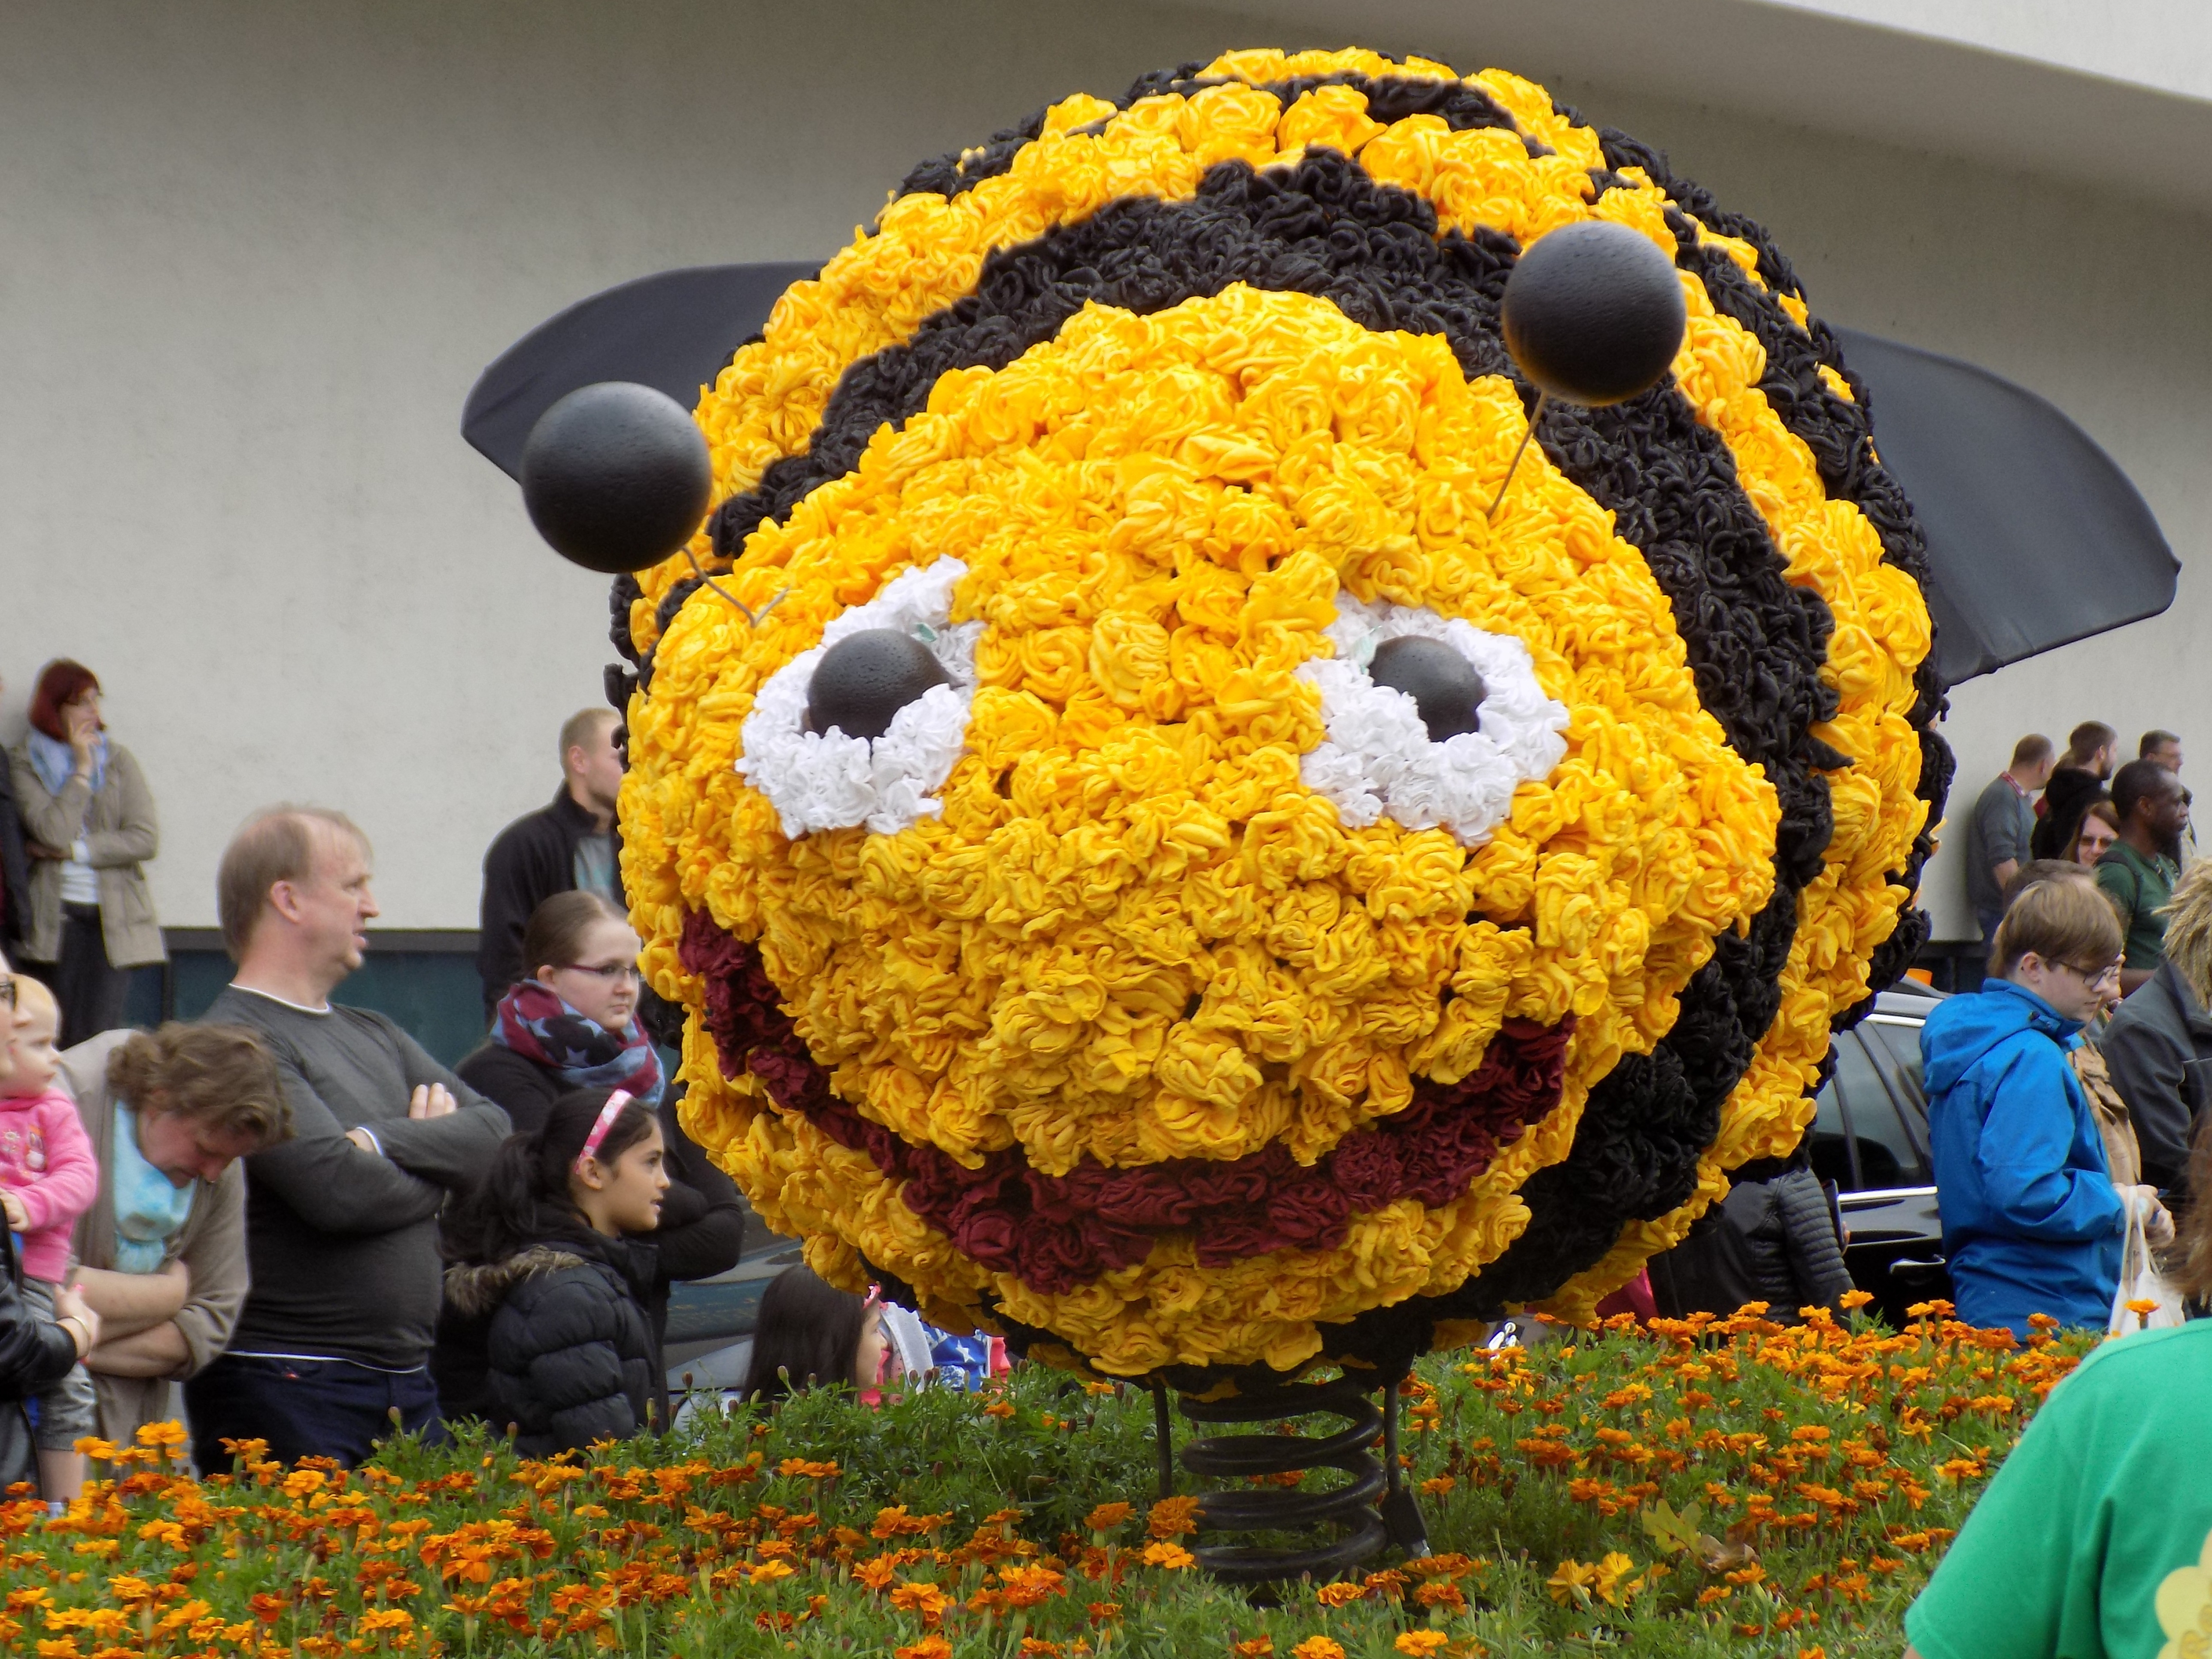 All Cute Flower Wallpaper Yellow And Black Bee Flower Float Free Image Peakpx